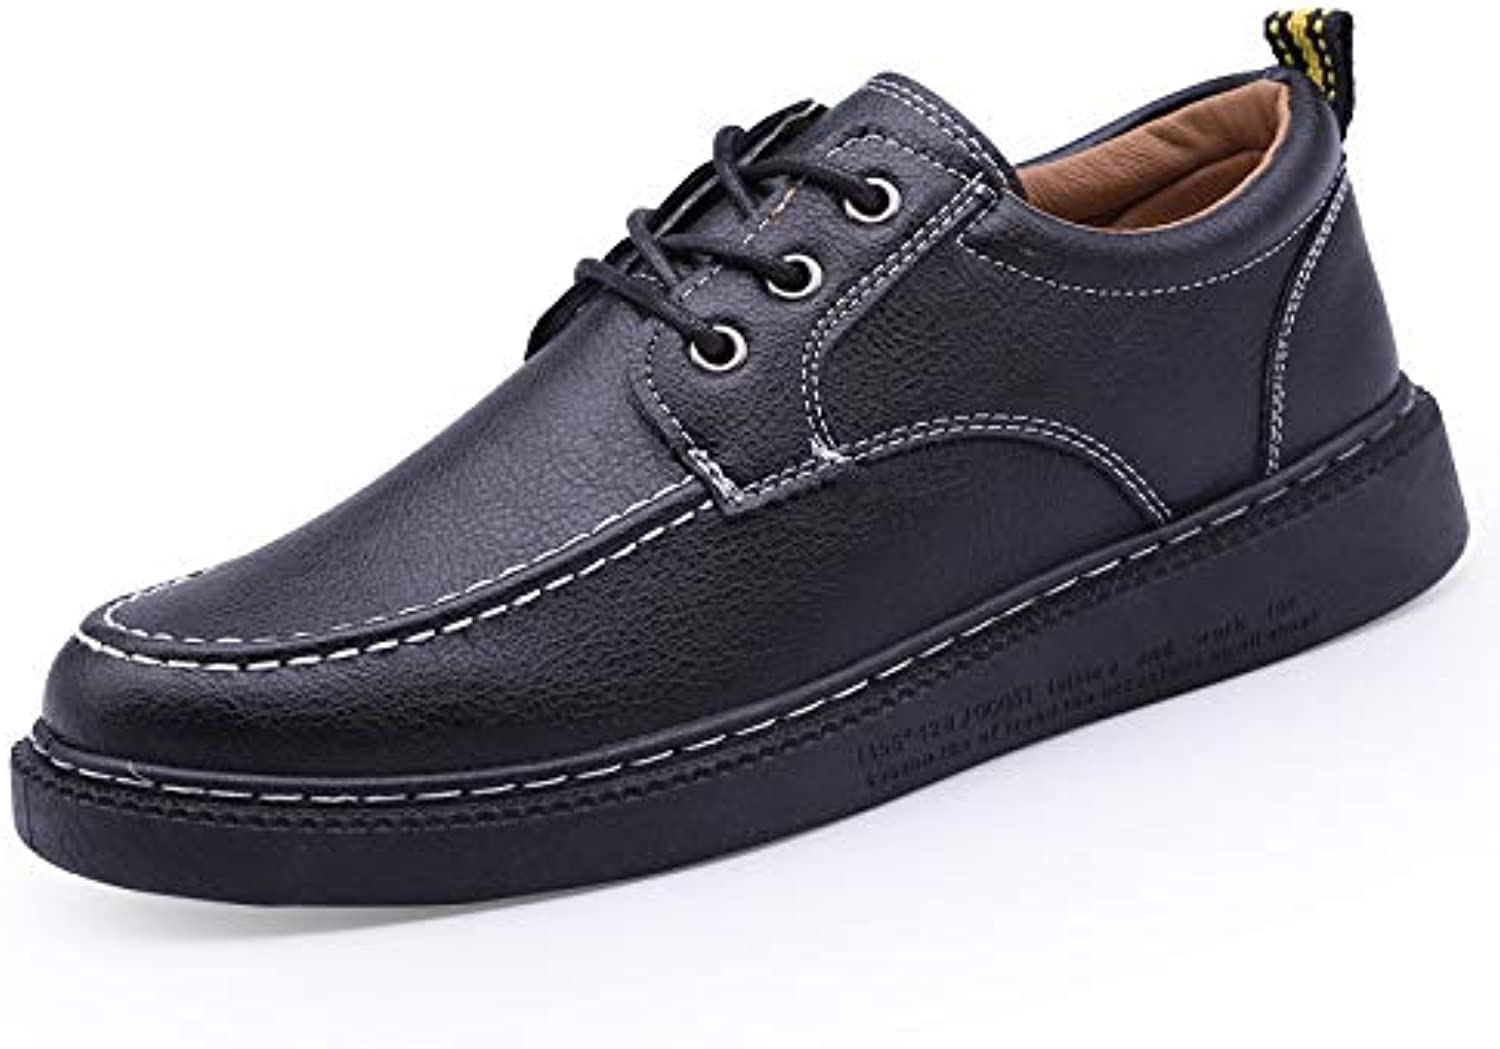 LOVDRAM Men'S Leather shoes Spring New Men'S Leather shoes Simple Versatile Business Men'S shoes Flat Casual shoes